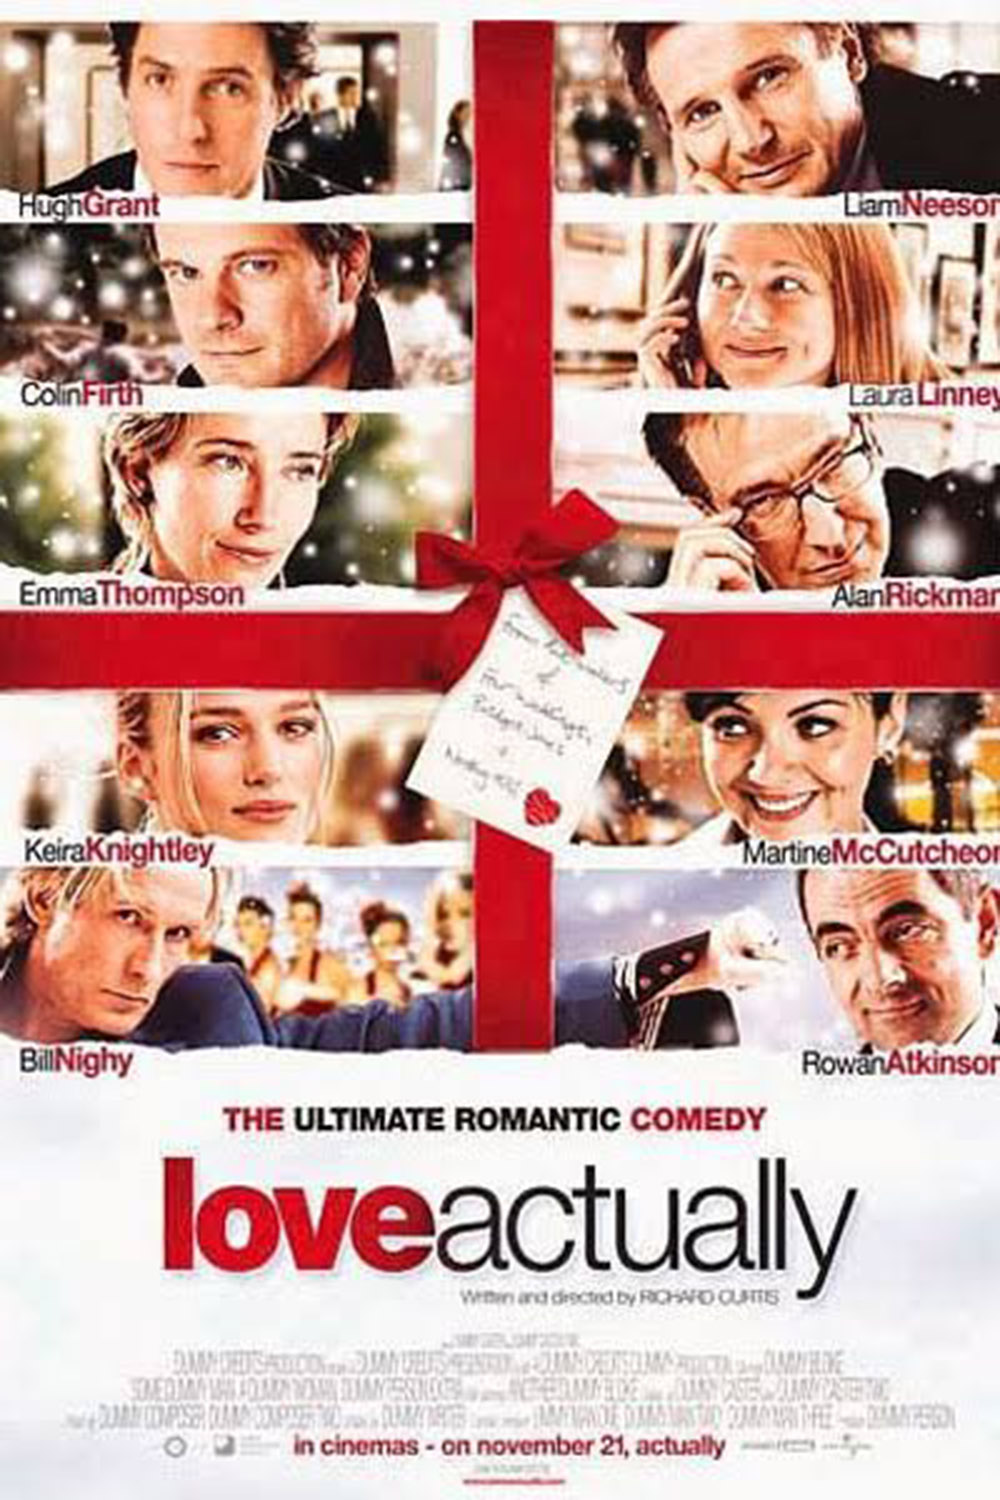 loveactually.jpg